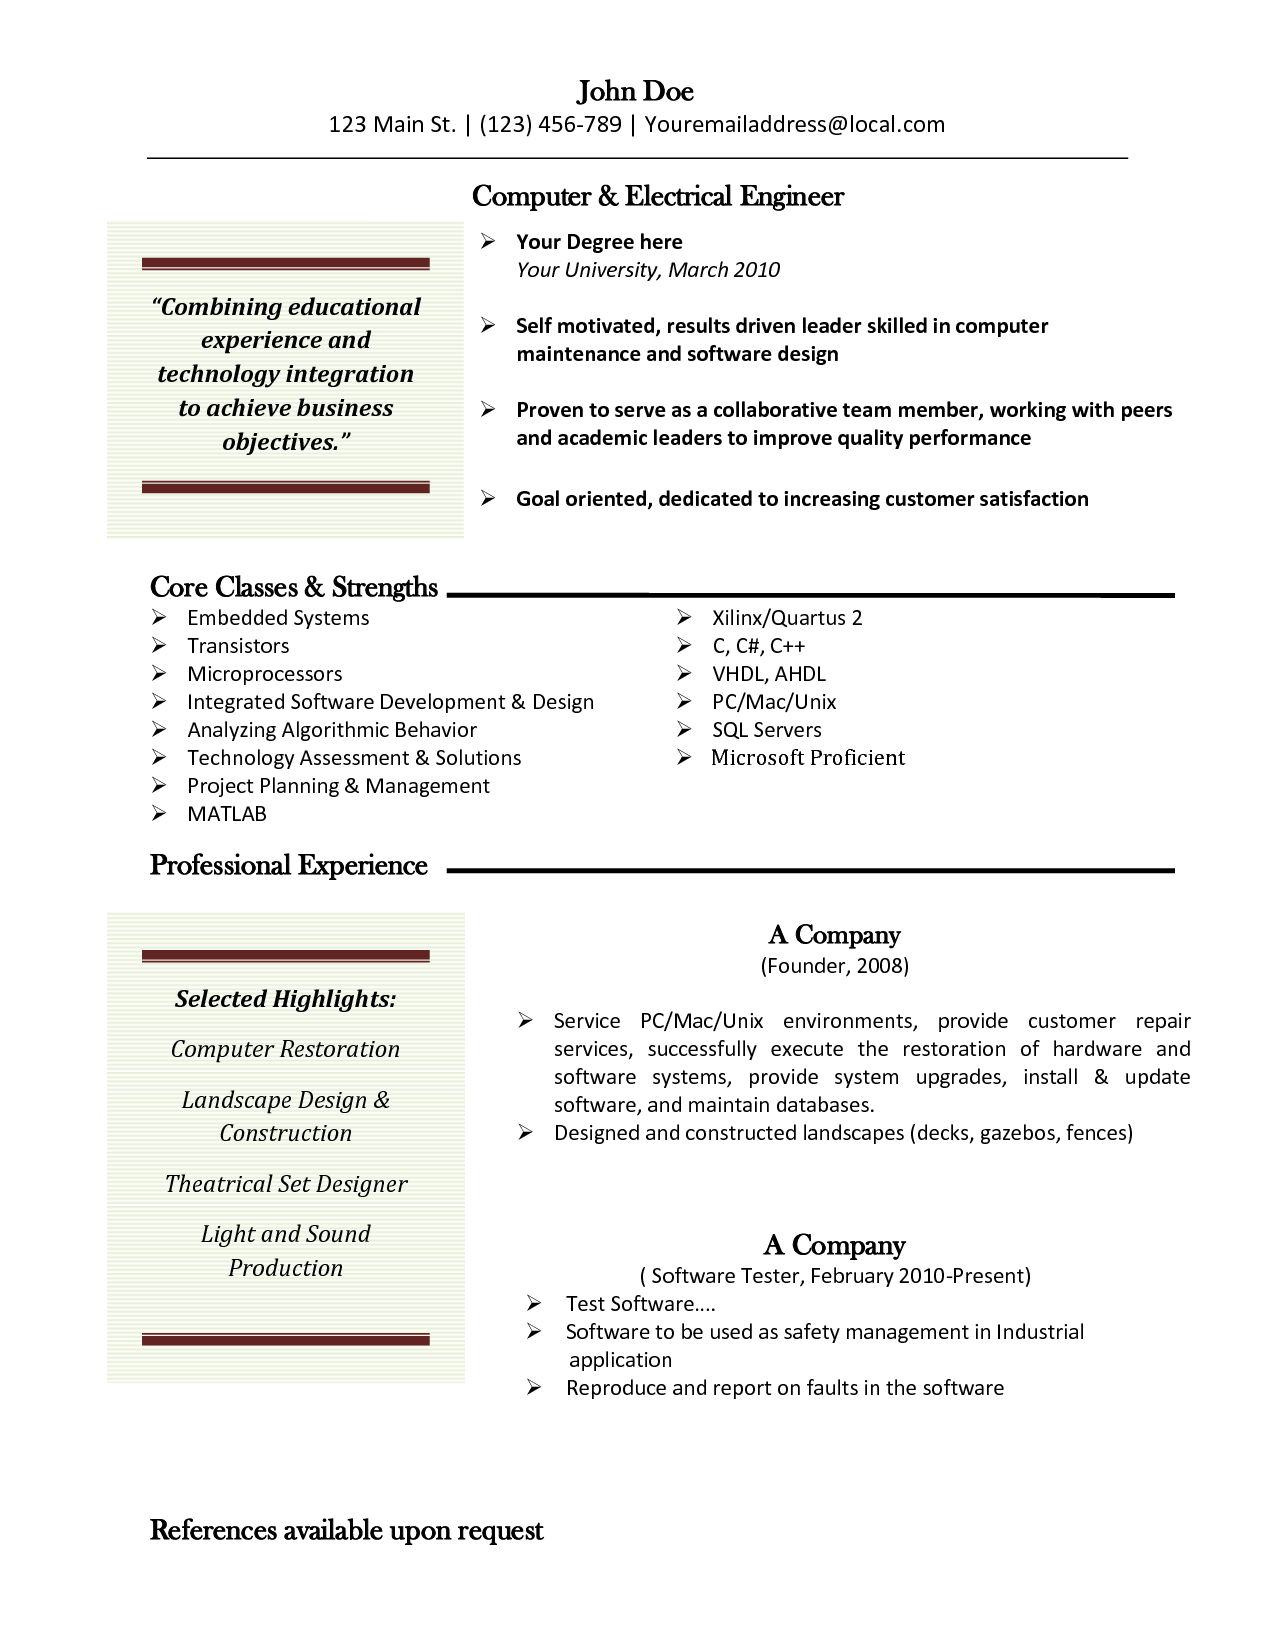 Free Resume Templates Microsoft Word Resume Templates For Mac  Httpwwwjobresumewebsiteresume